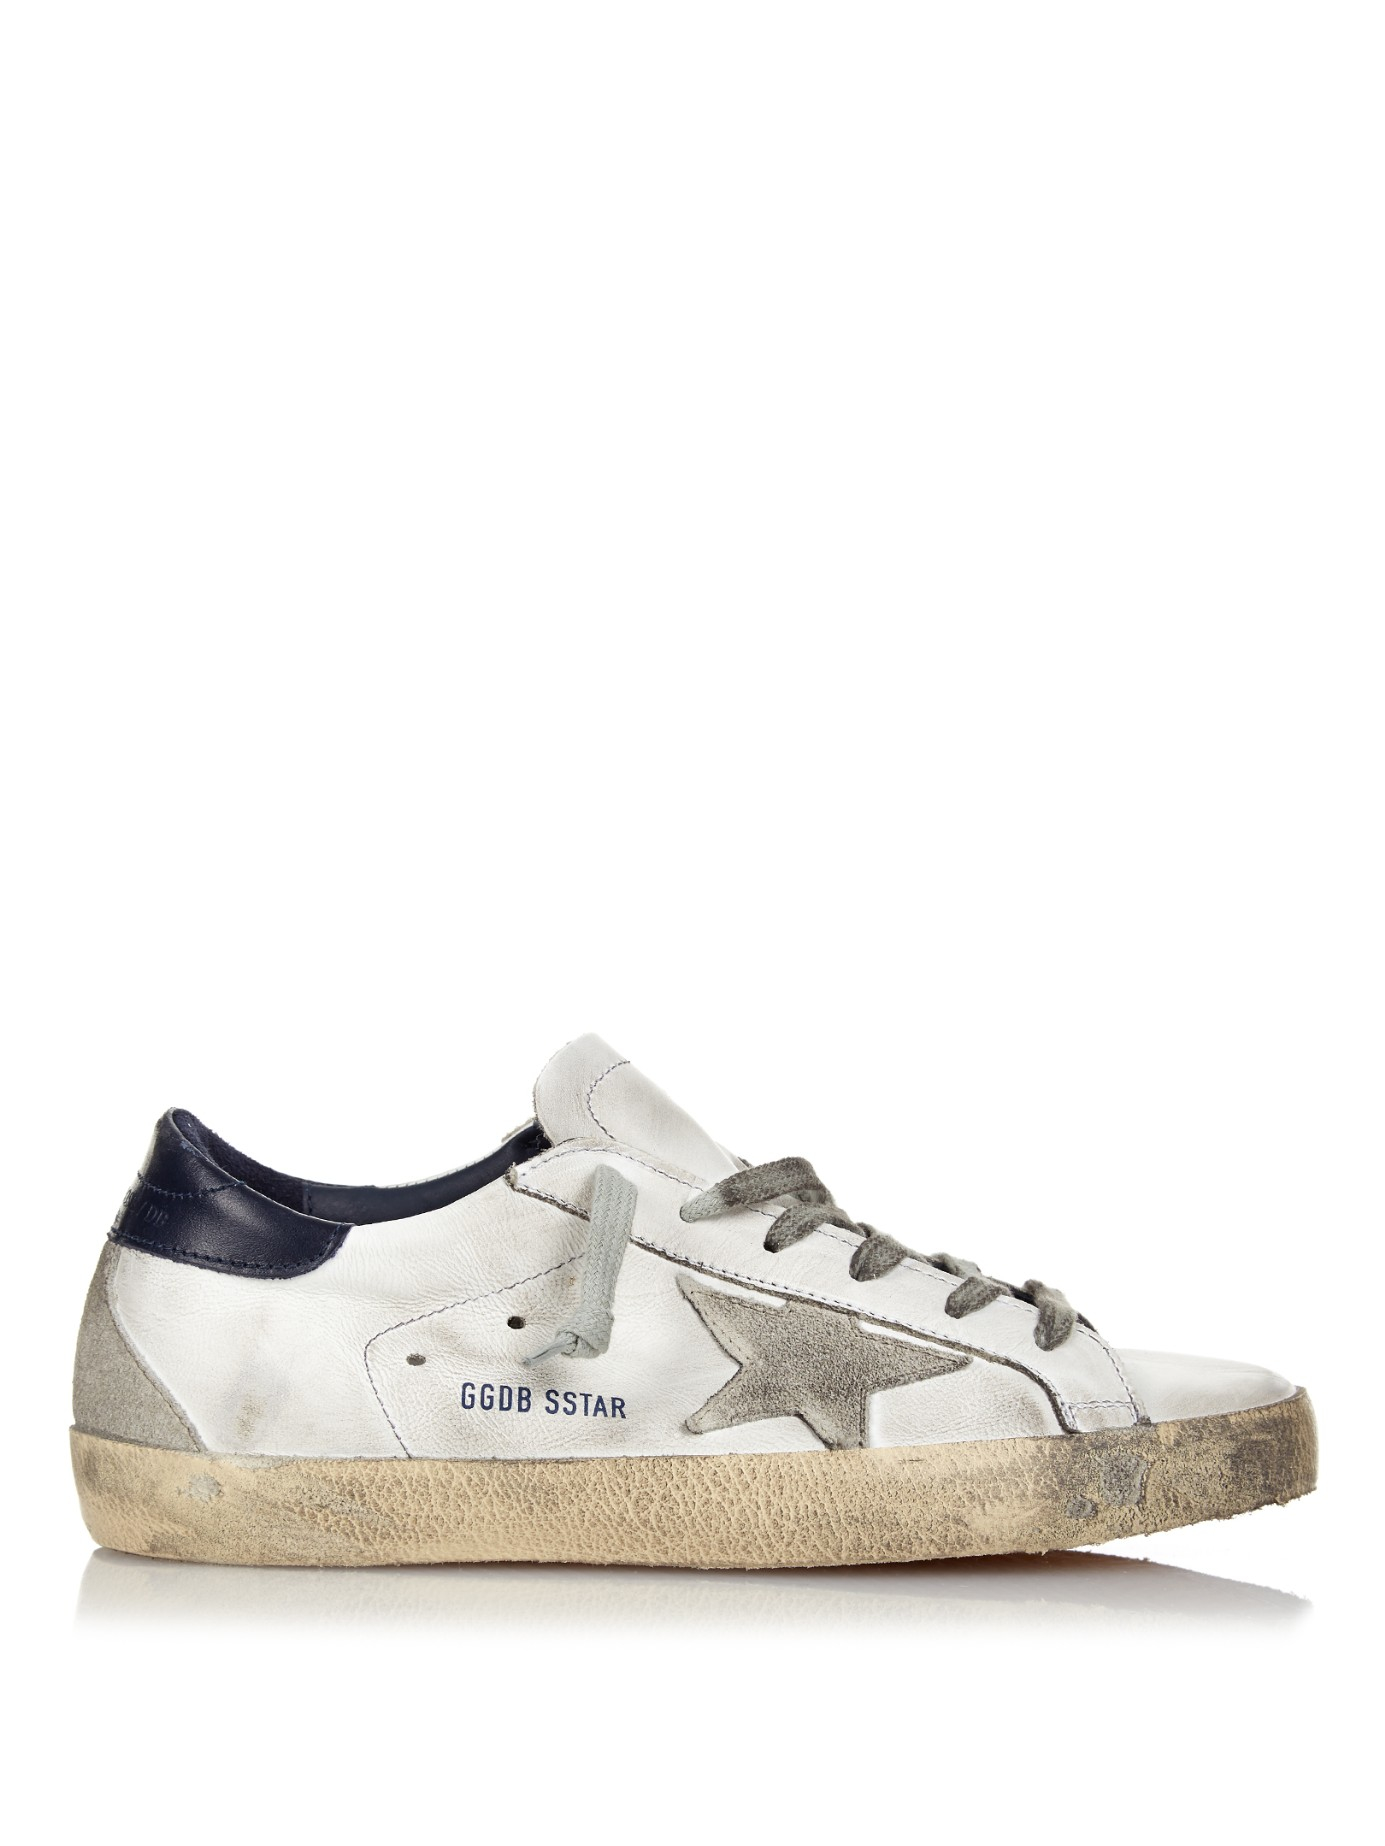 Golden Goose Womens 'Super Star' Sneakers in Gray - Golden Goose Outlet